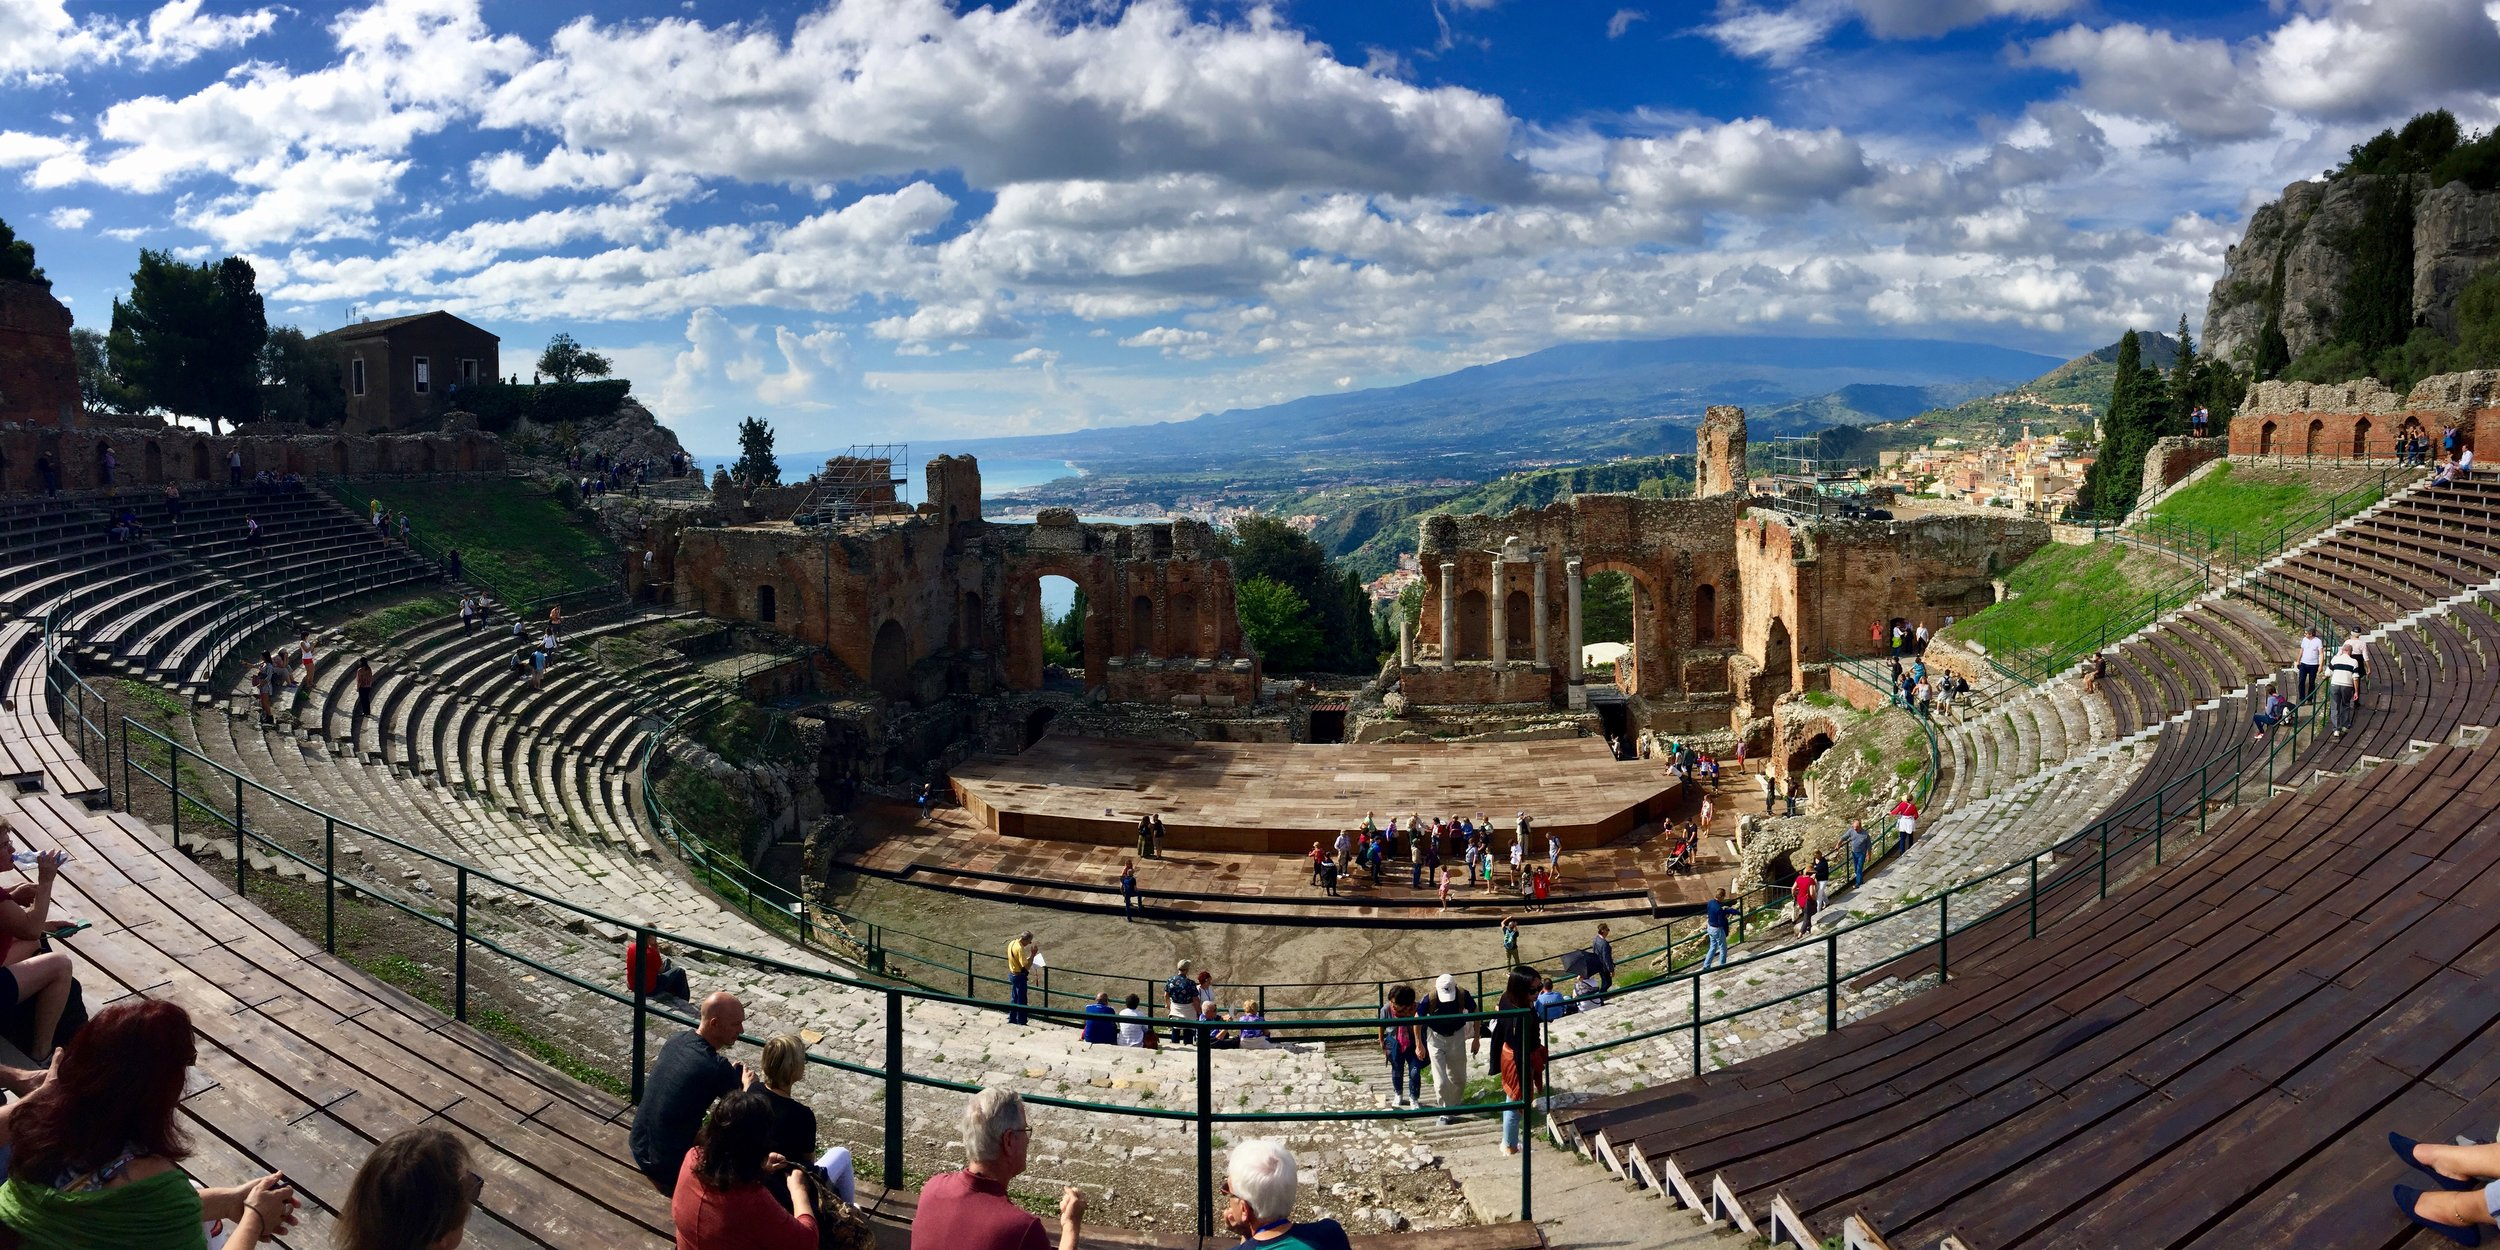 The amazing Ancient Greek Theater at Taormina